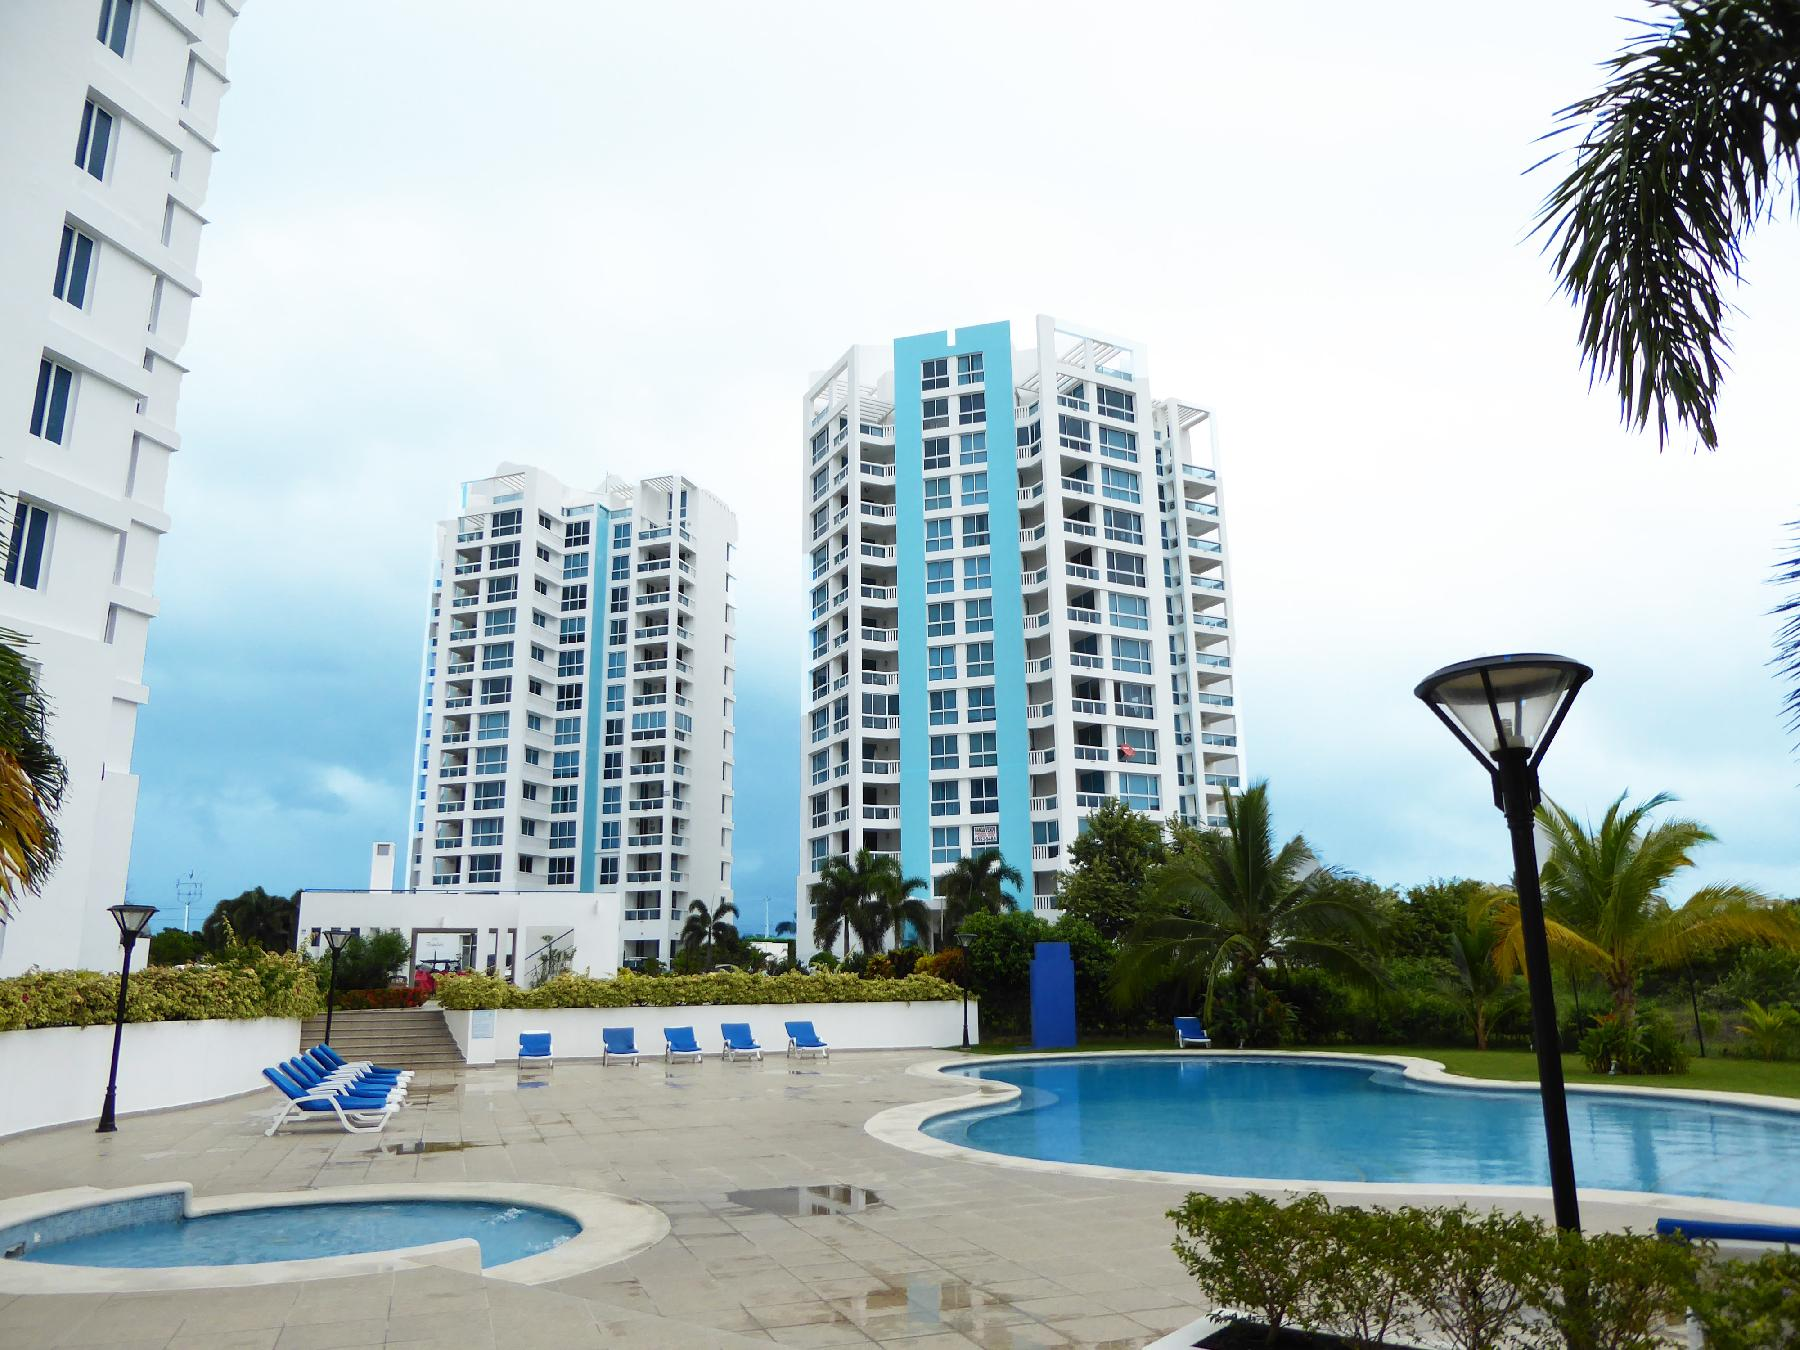 PANAMA PLAYA BLANCA FOUNDERS 2 BDRM NICE AMENITIES